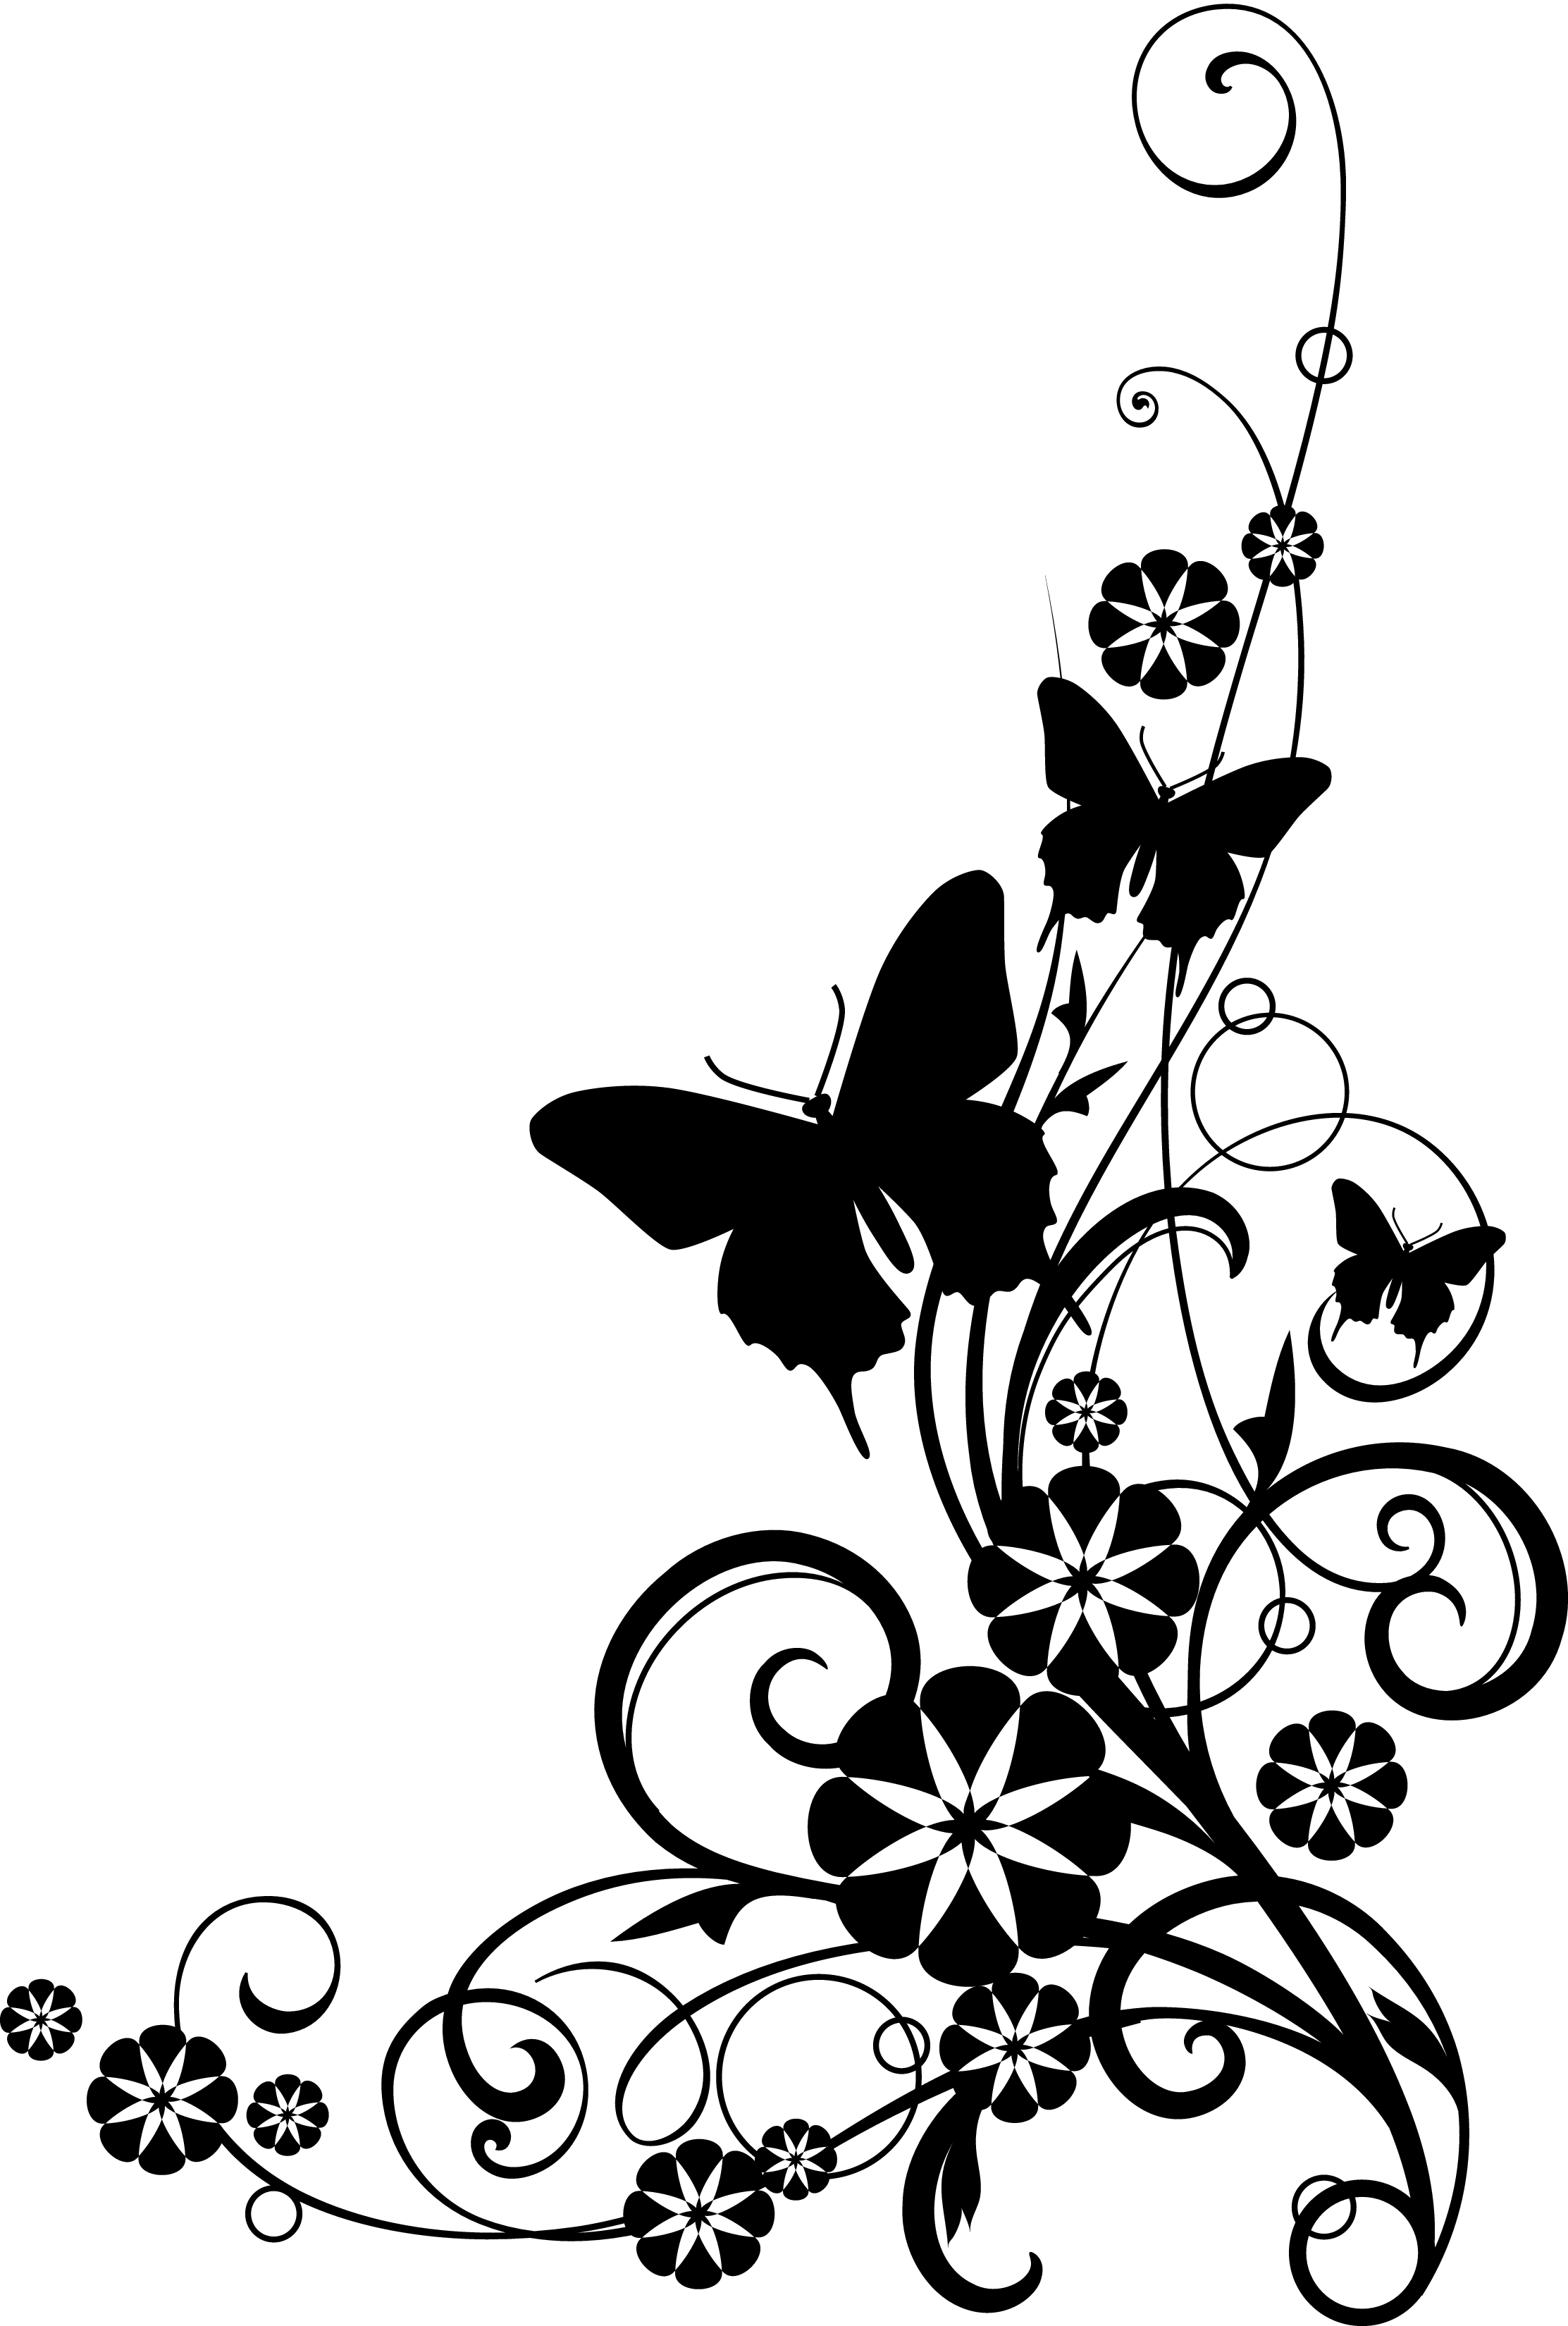 Butterfly  black and white black and white cross with butterfly clipart